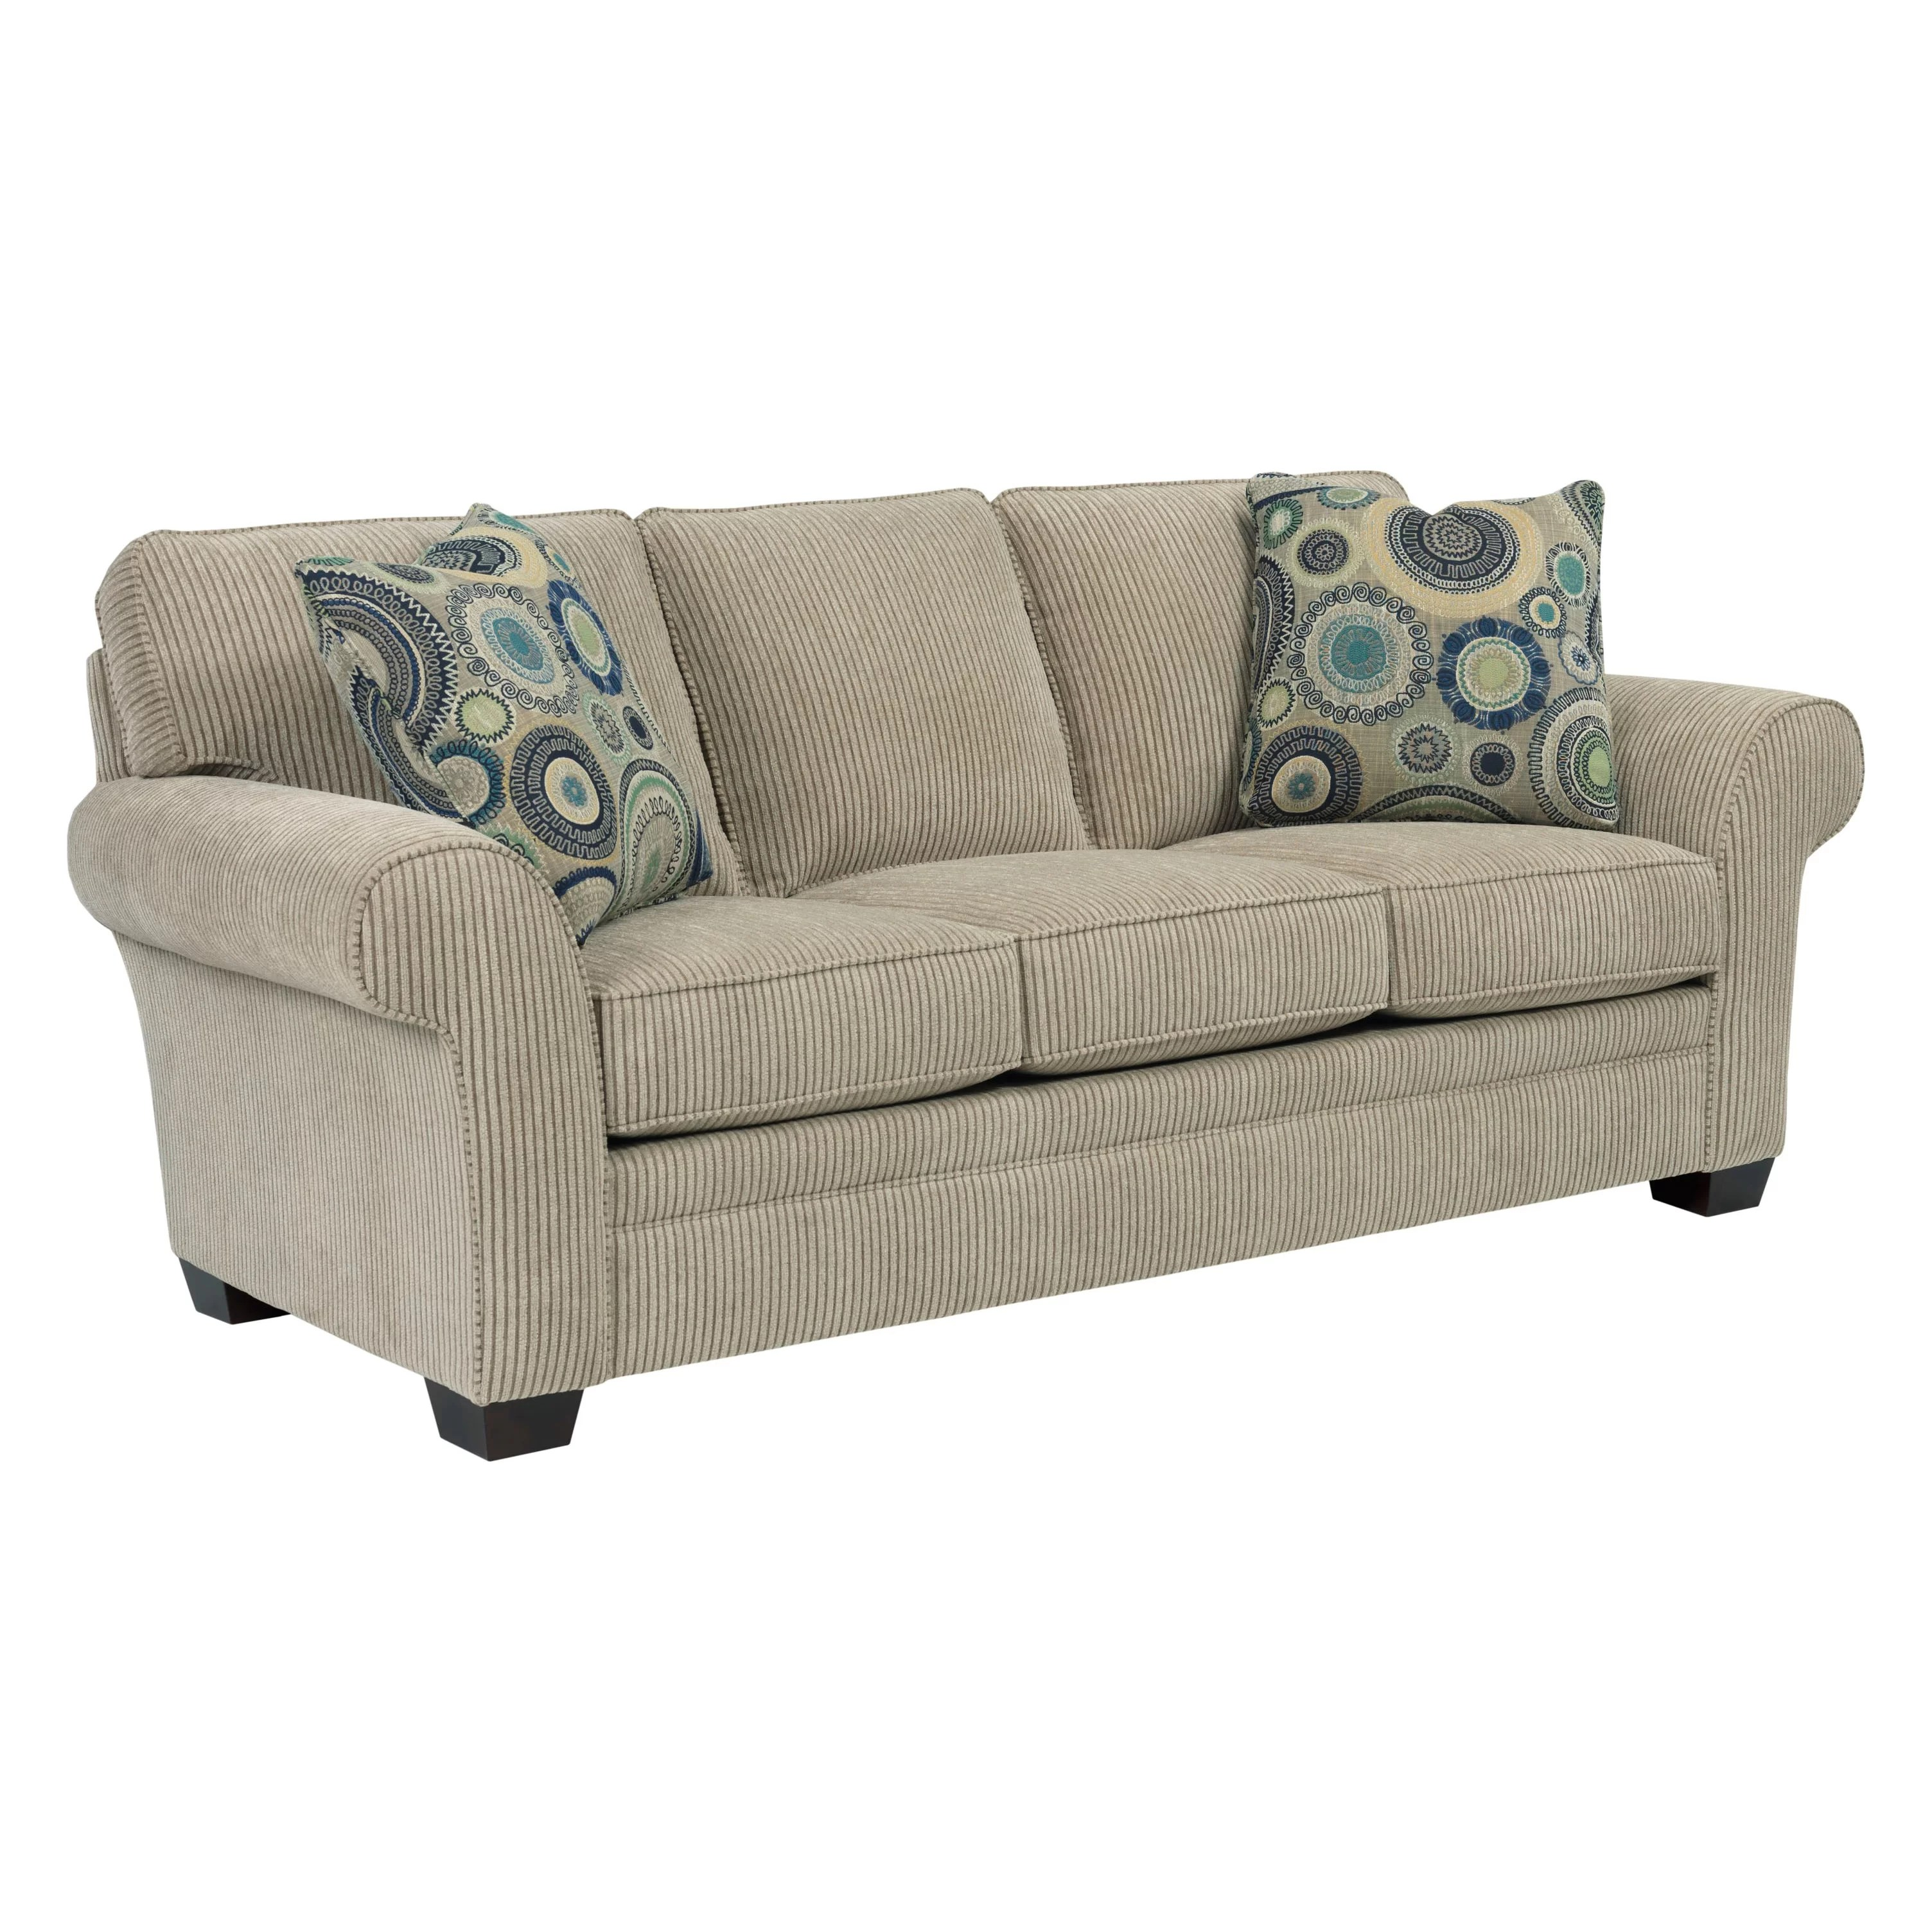 broyhill sectional sofa reviews how to clean pen stains from leather zachary and wayfair